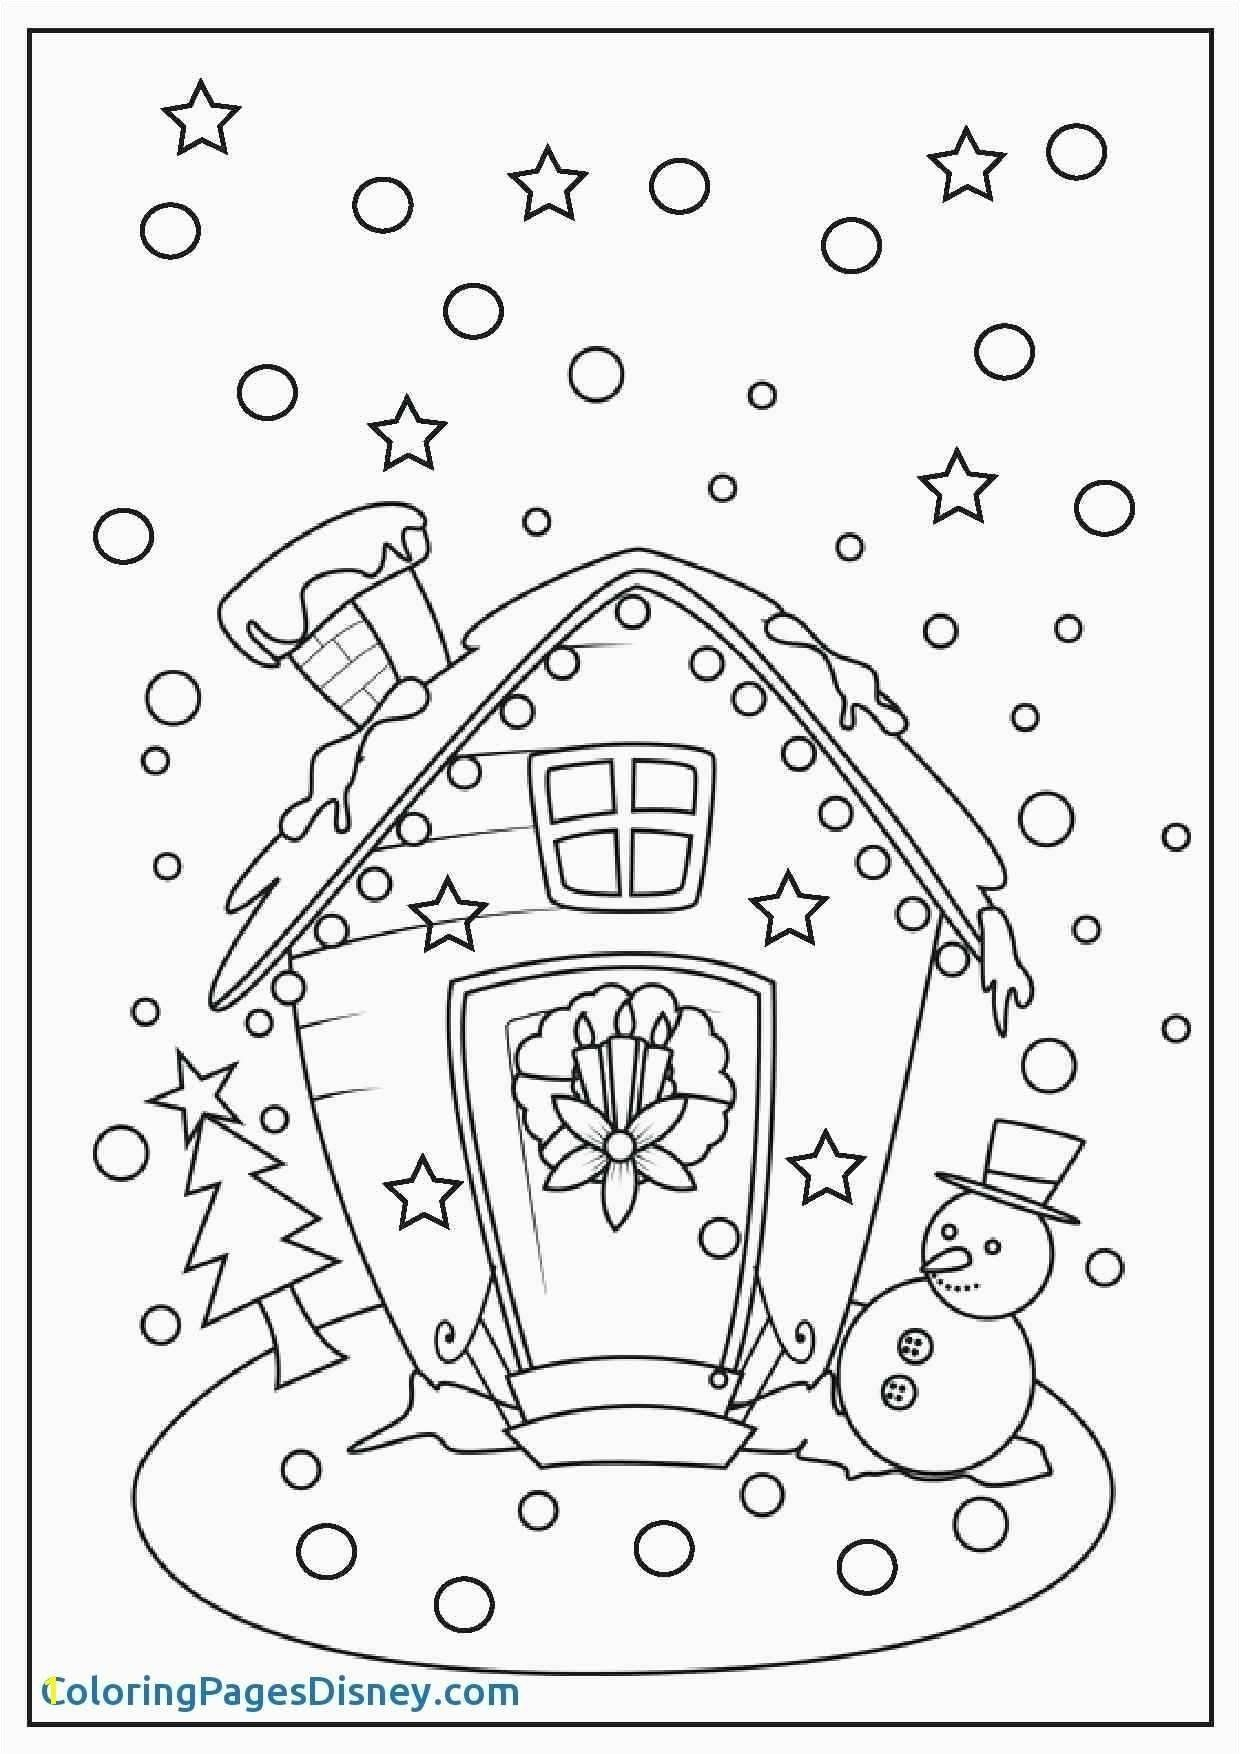 Disney Princess Rapunzel Coloring Pages Beautiful Cleanty Wp Content In 2020 Printable Christmas Coloring Pages Christmas Coloring Sheets Coloring Pages Inspirational